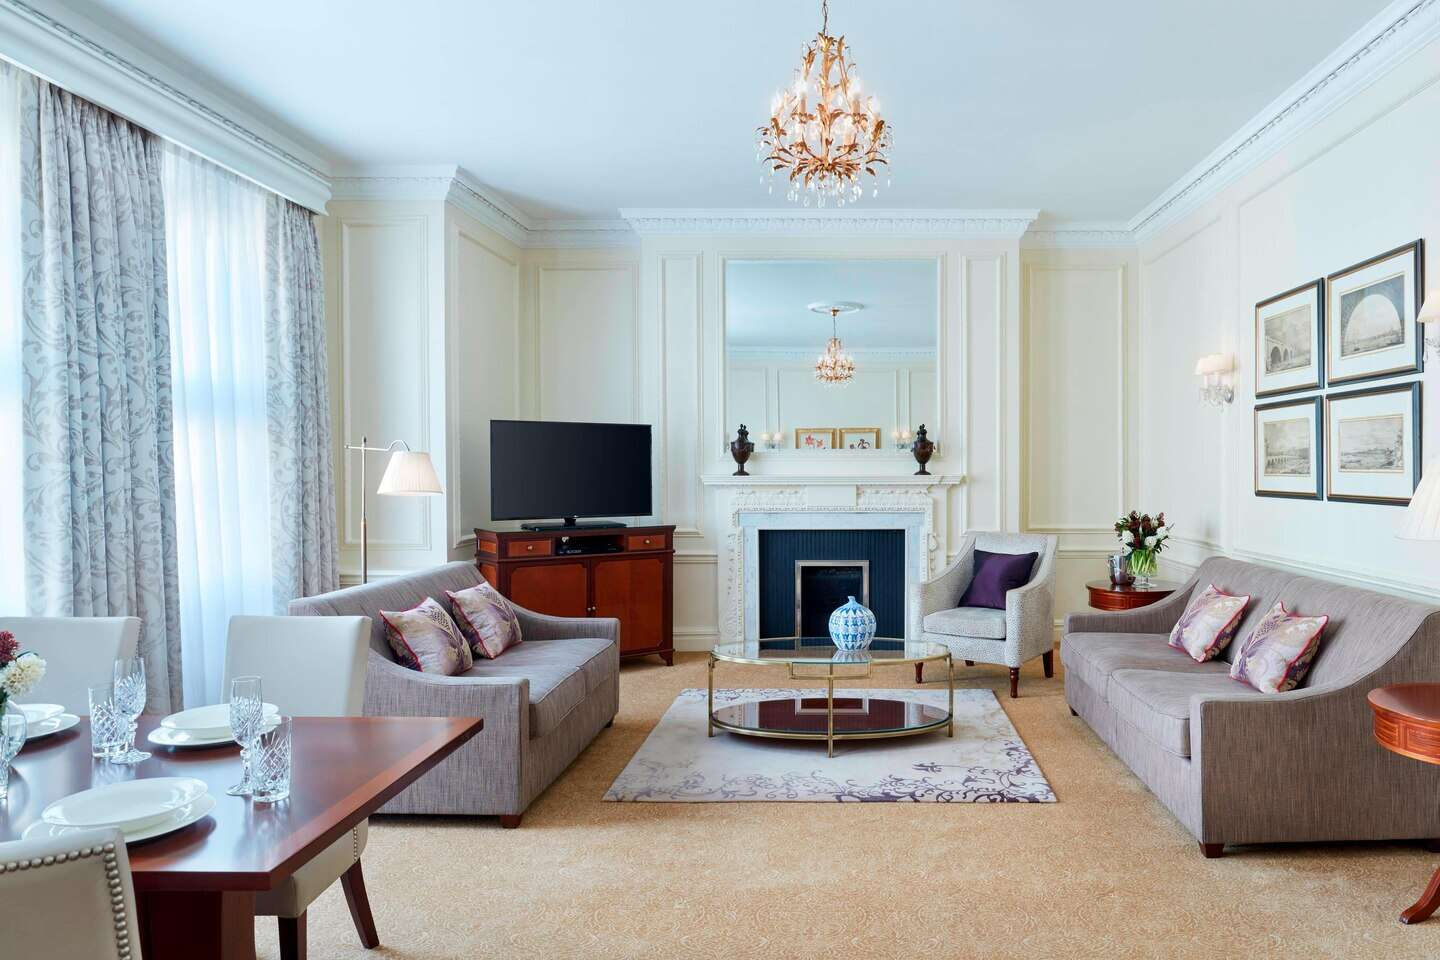 Luxury vacation rentals europe - United kingdom - London area - Grand residences by marriott mayfair - Deluxe 1 BDM - Image 1/8